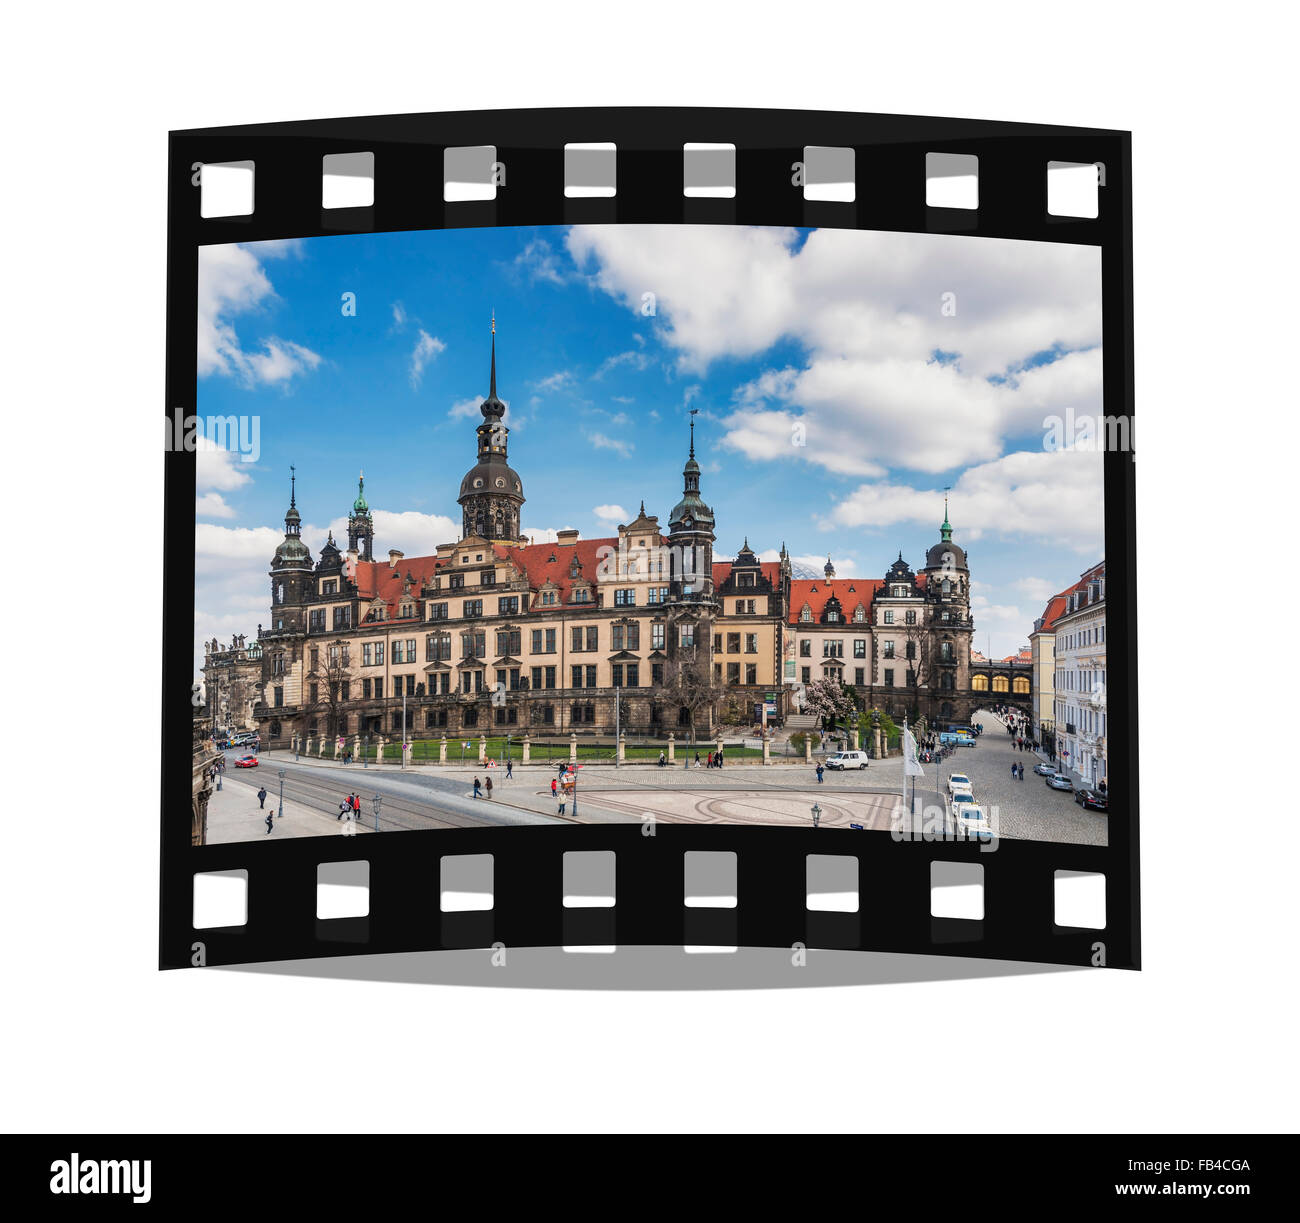 View to the Dresden Royal Palace, Dresden, Saxony, Germany, Europe - Stock Image